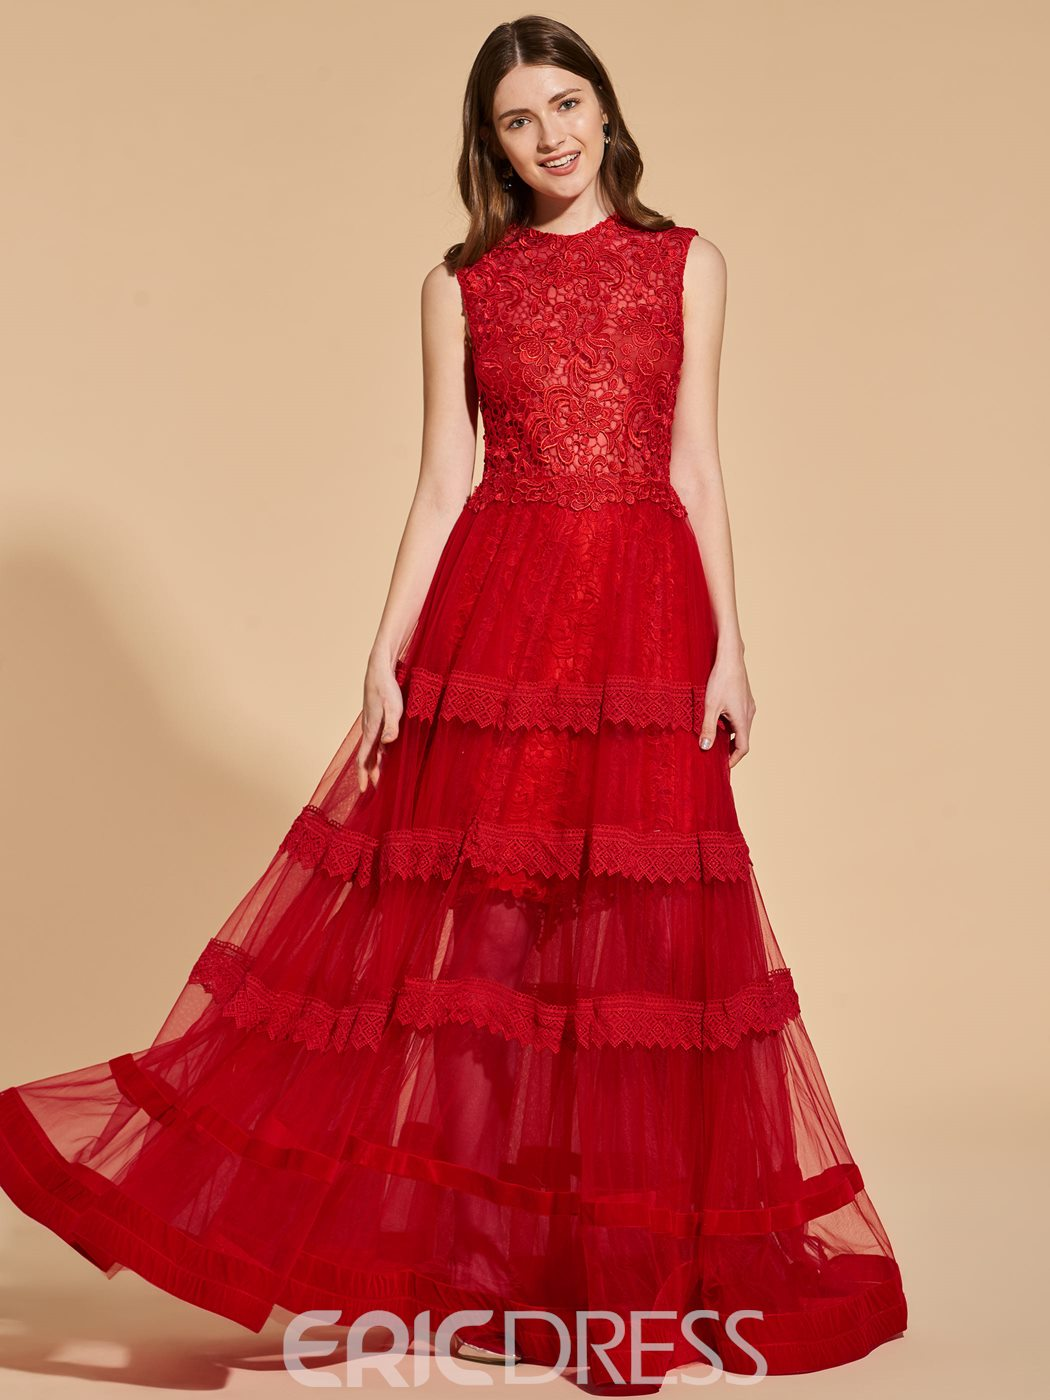 Ericdress A Line Scoop Neck Lace Long Prom Dress